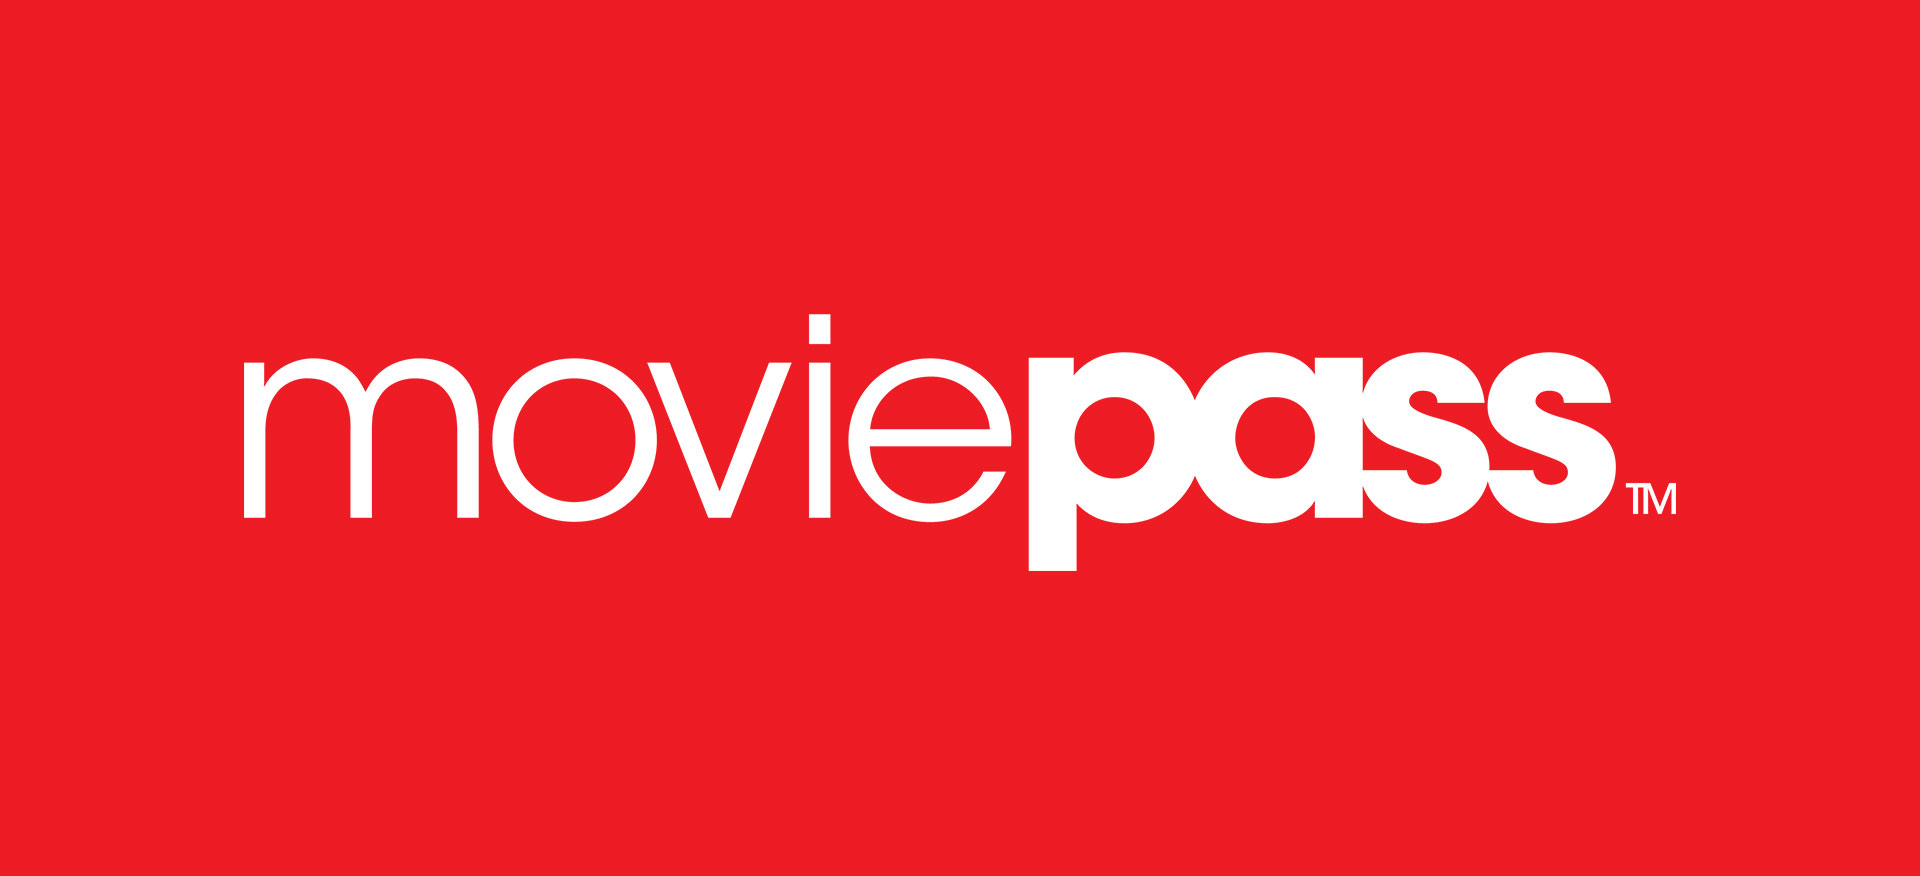 Where does MoviePass go from here? screenshot